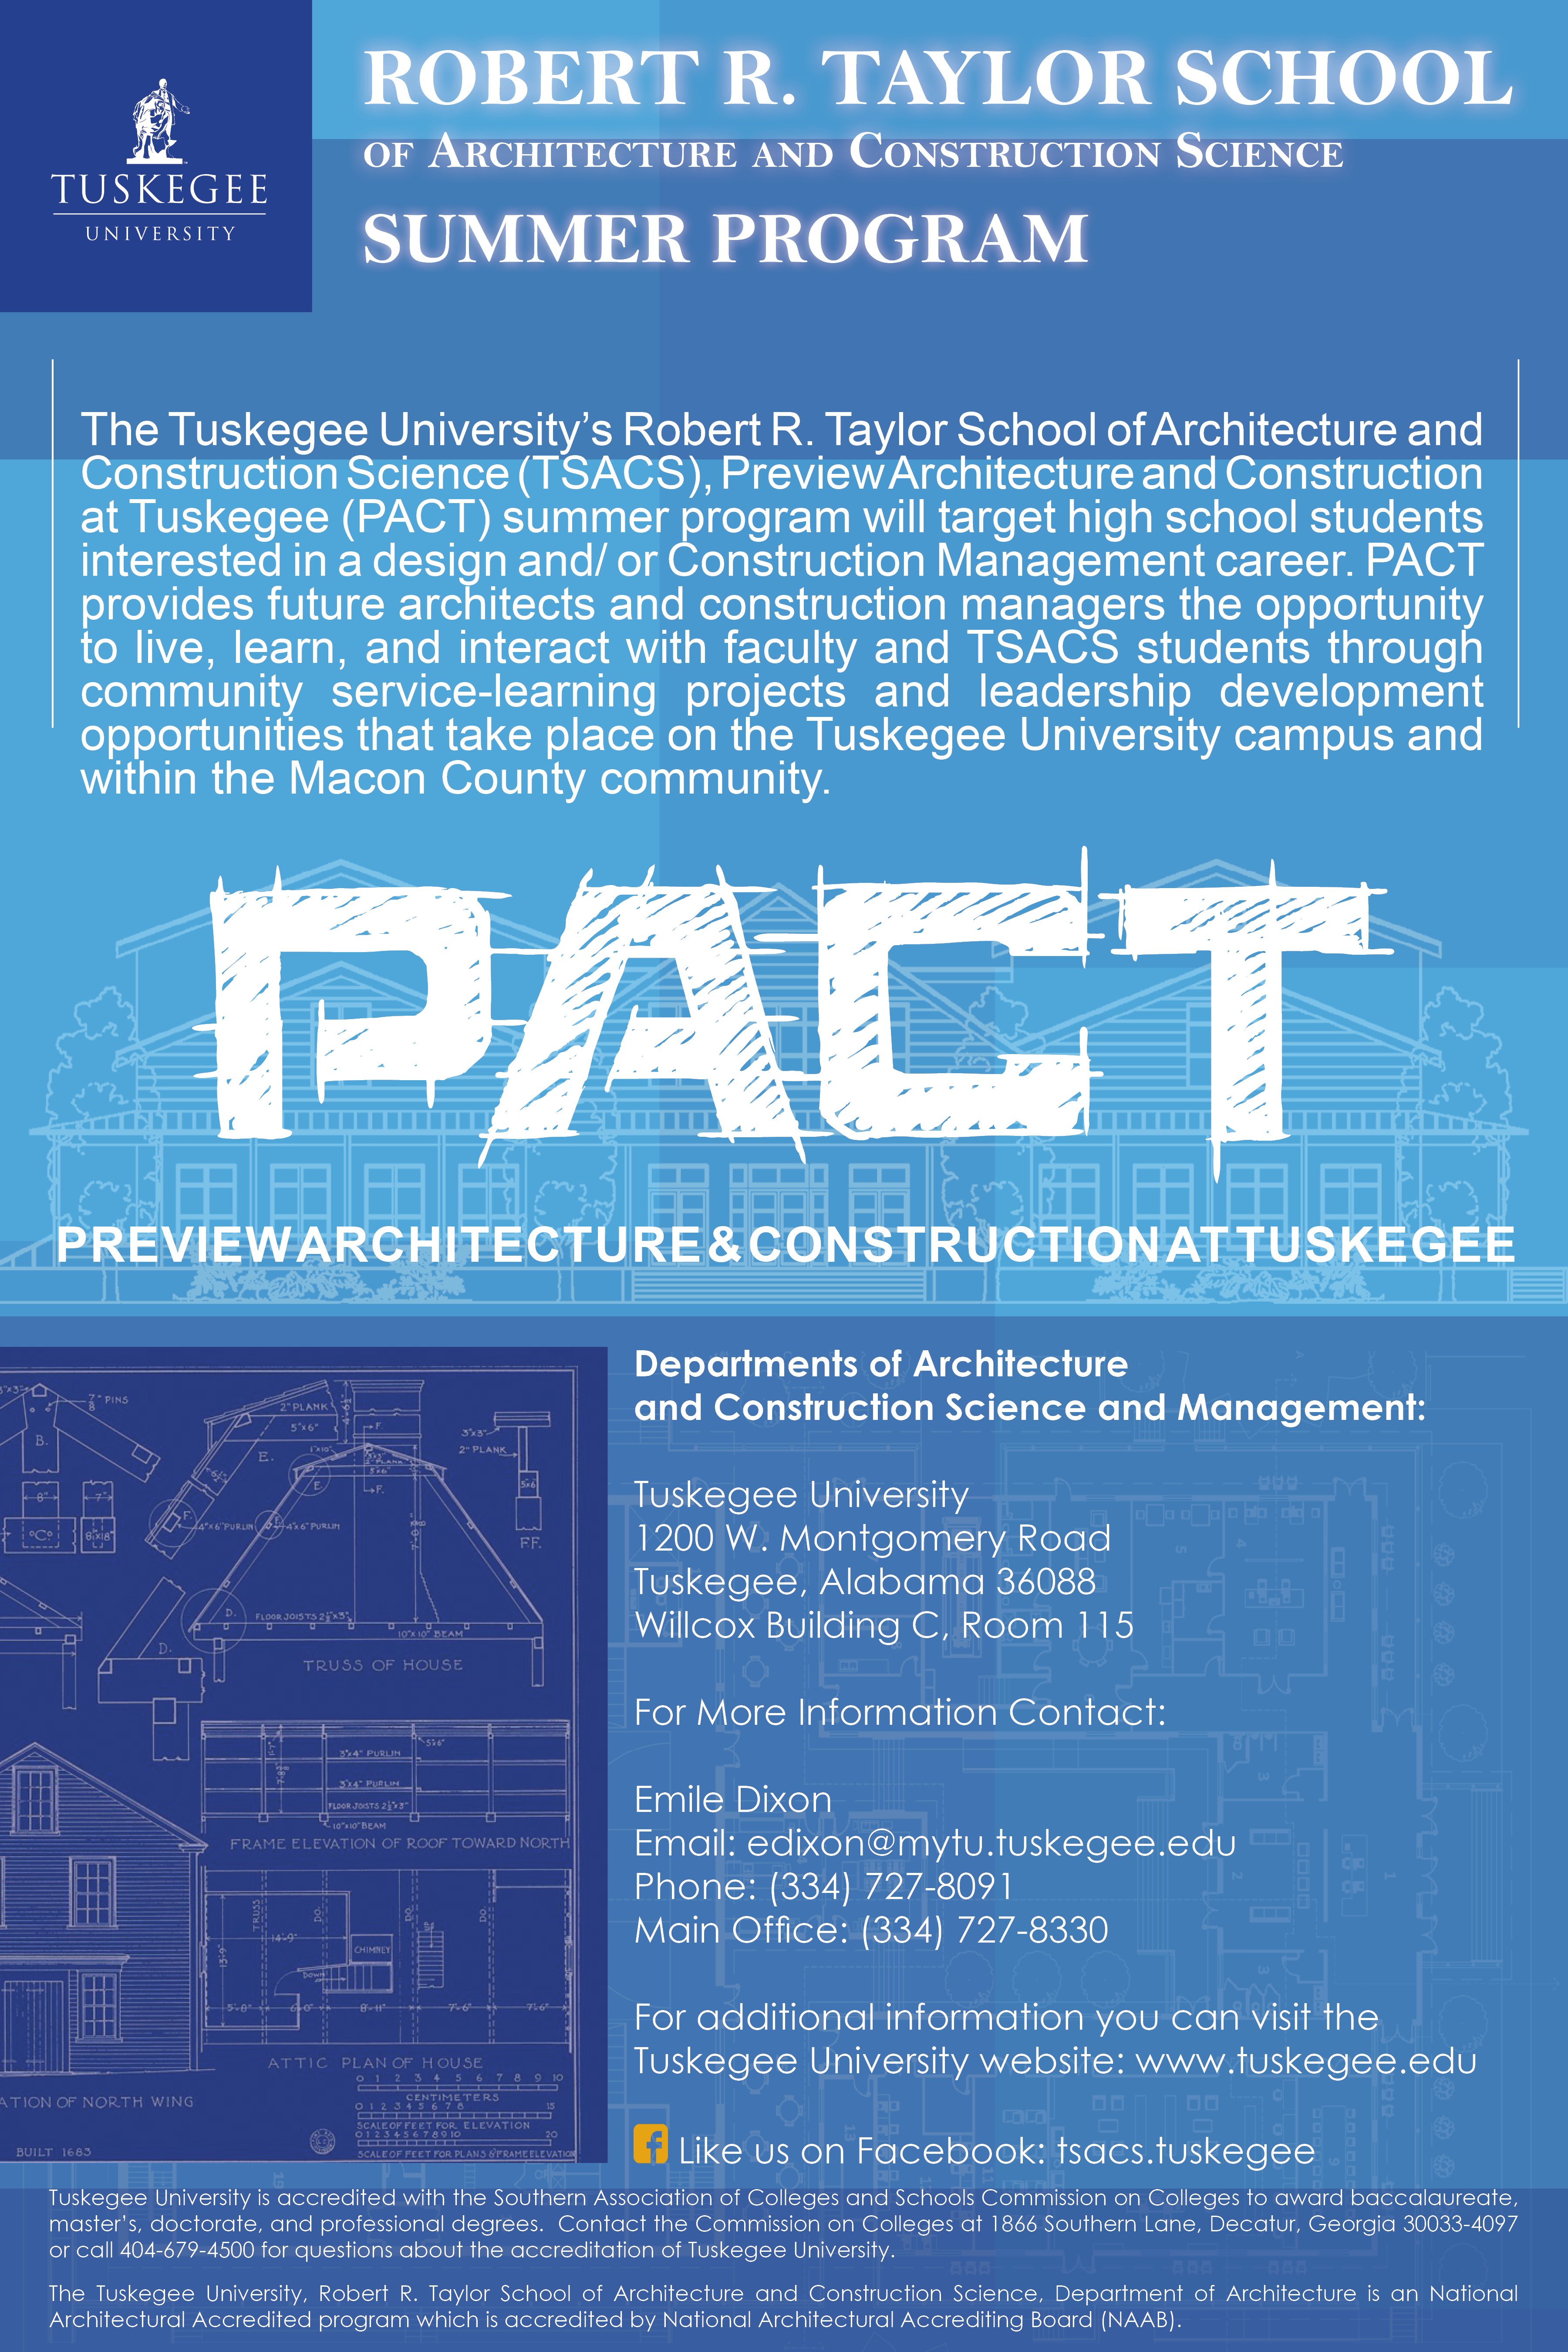 poster showing various activities with PACT summer program participants